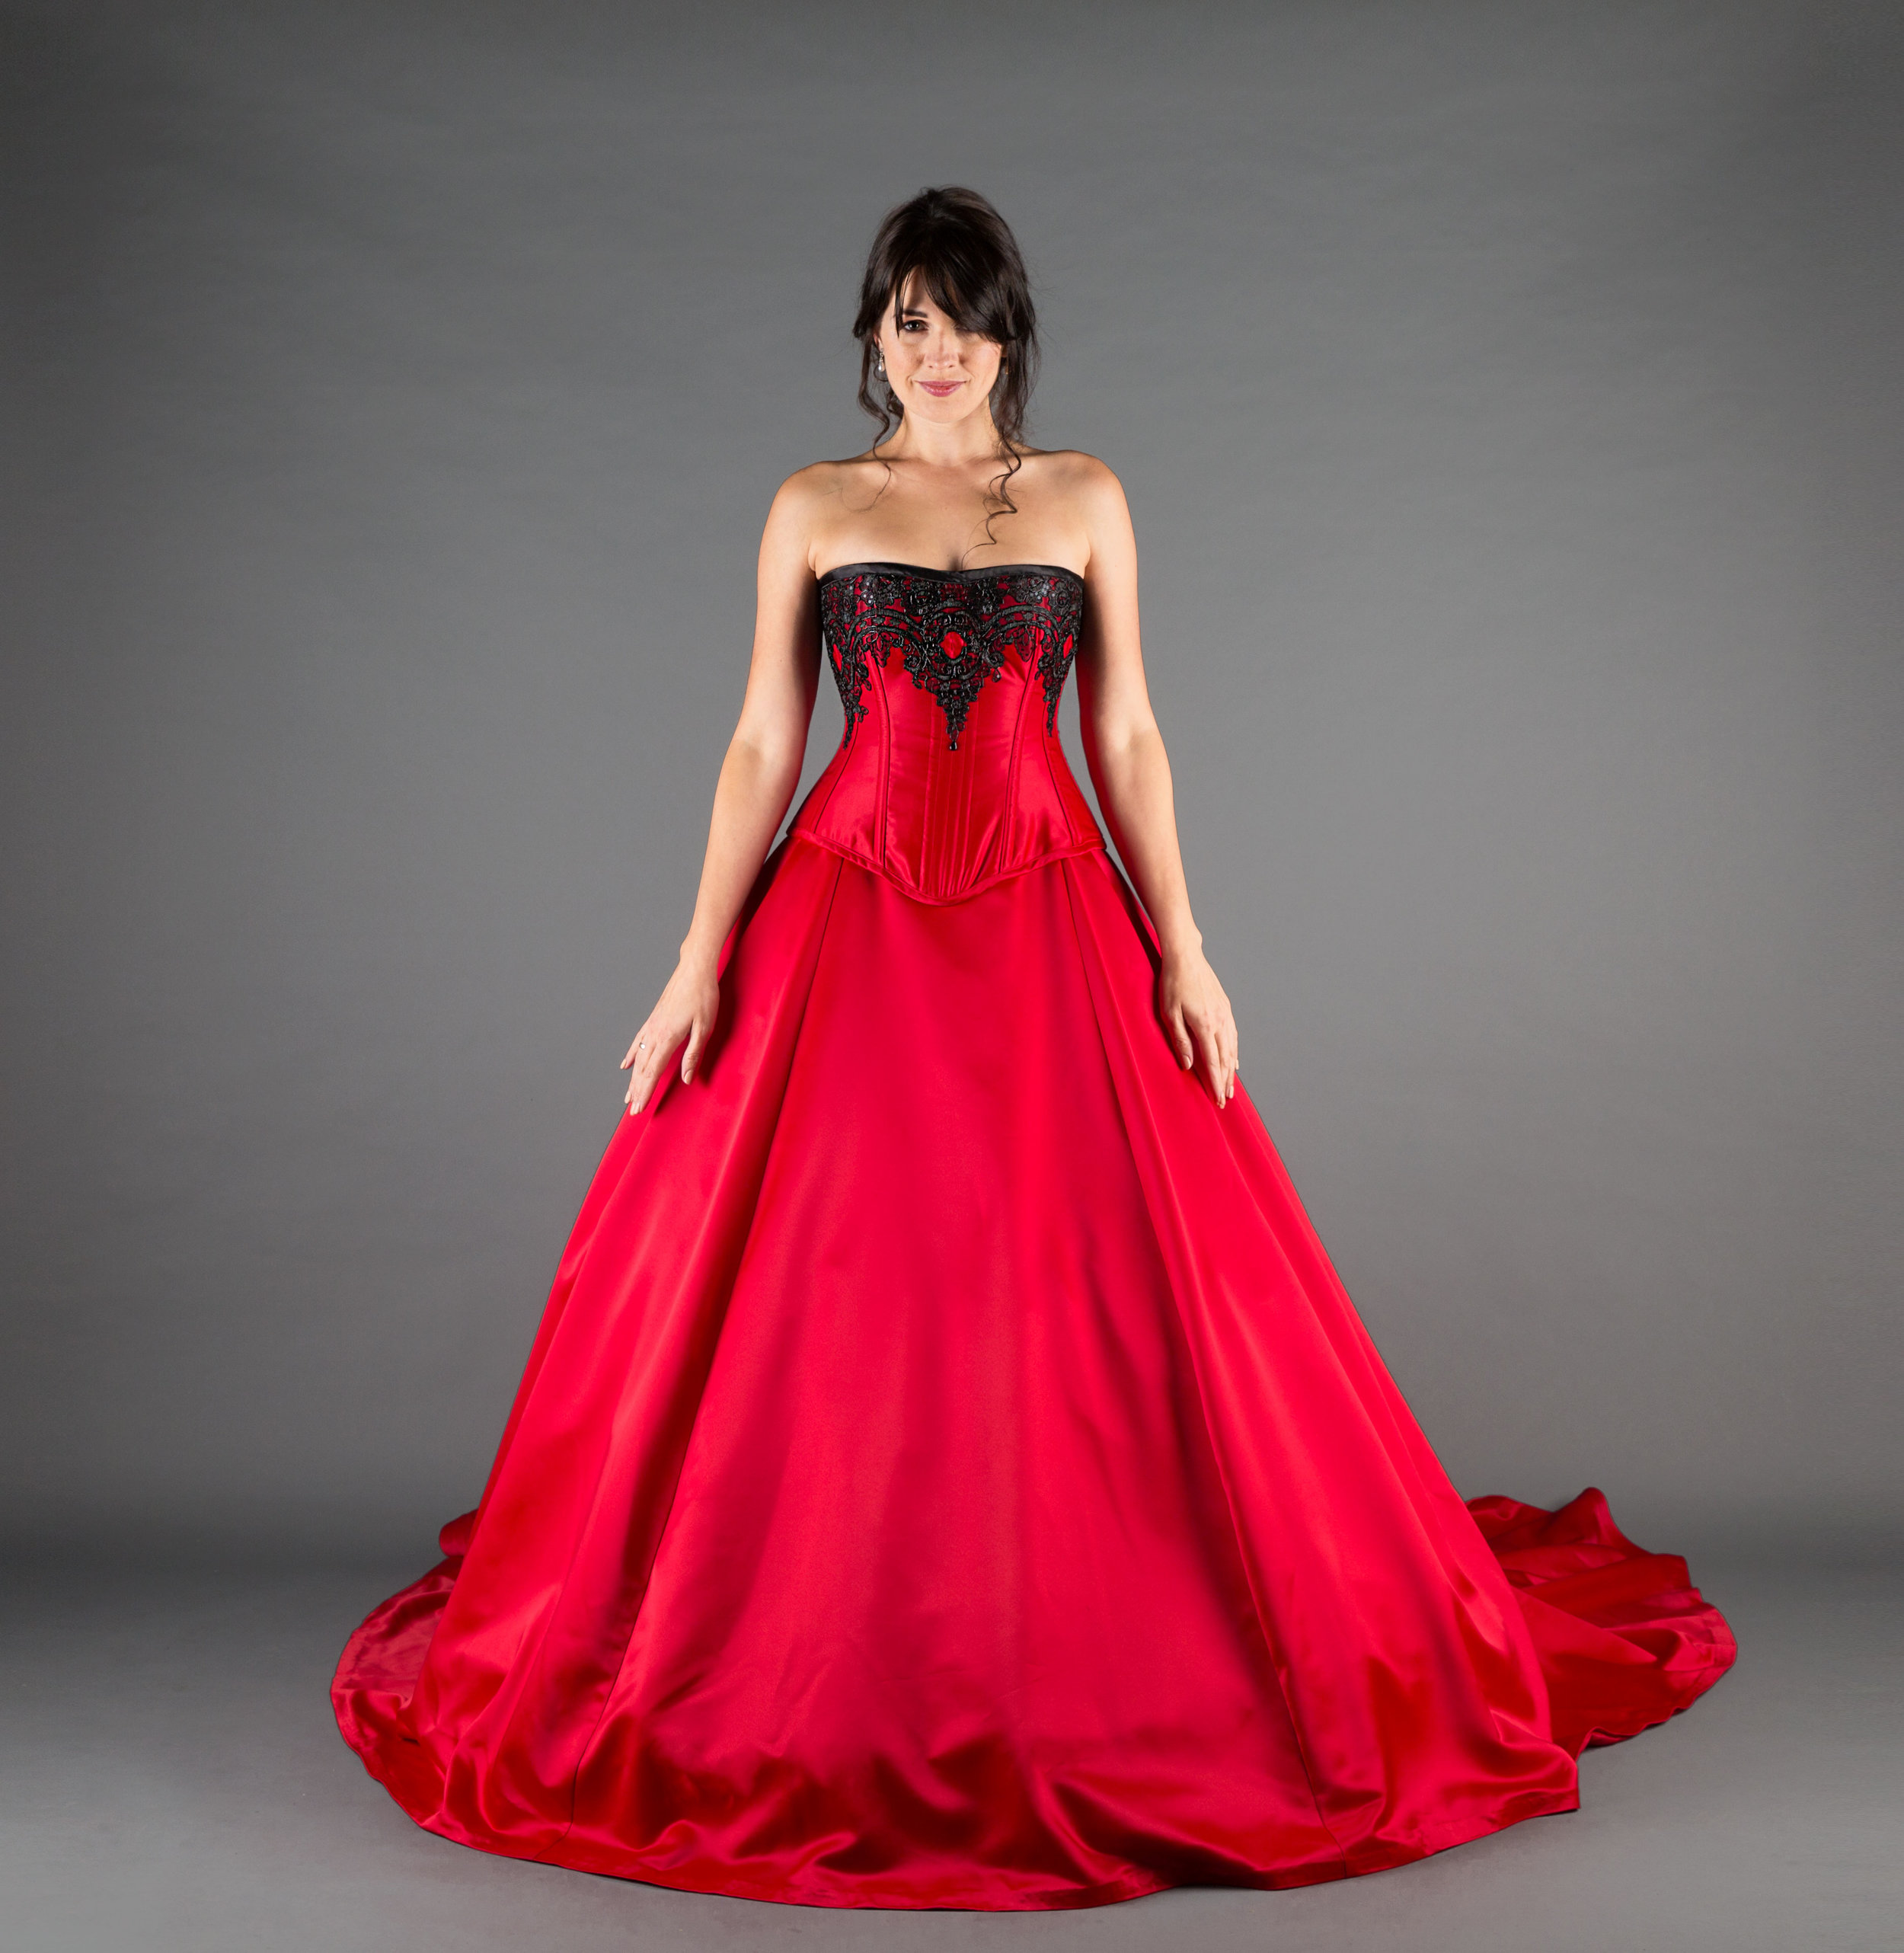 dd9e4f9a4683 Black And Red Victorian Wedding Dresses